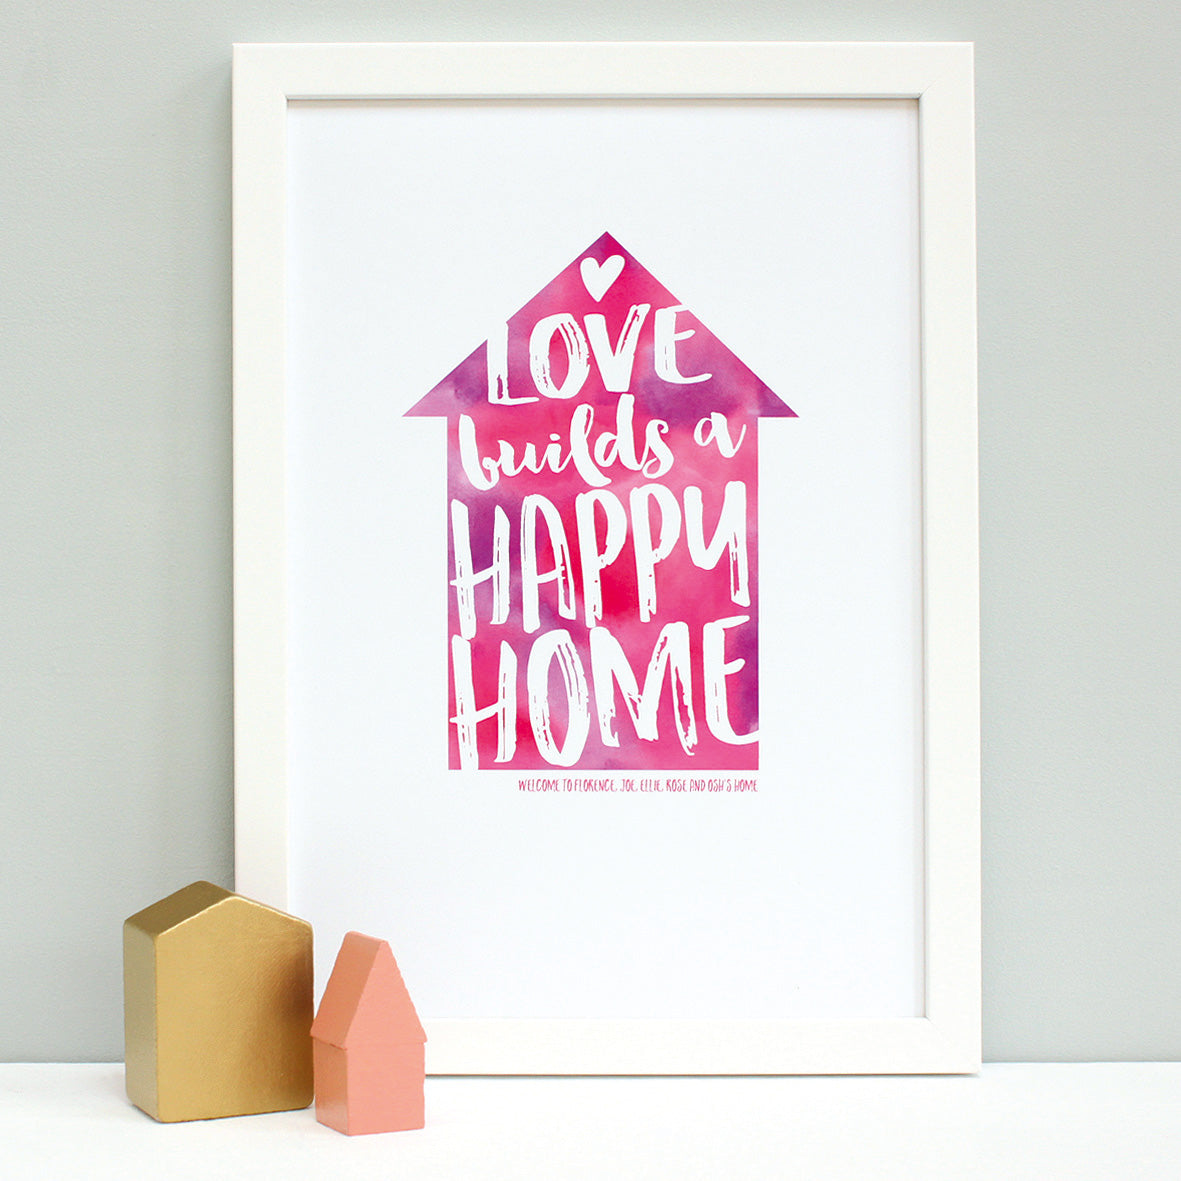 personalised new home quote print, white frame